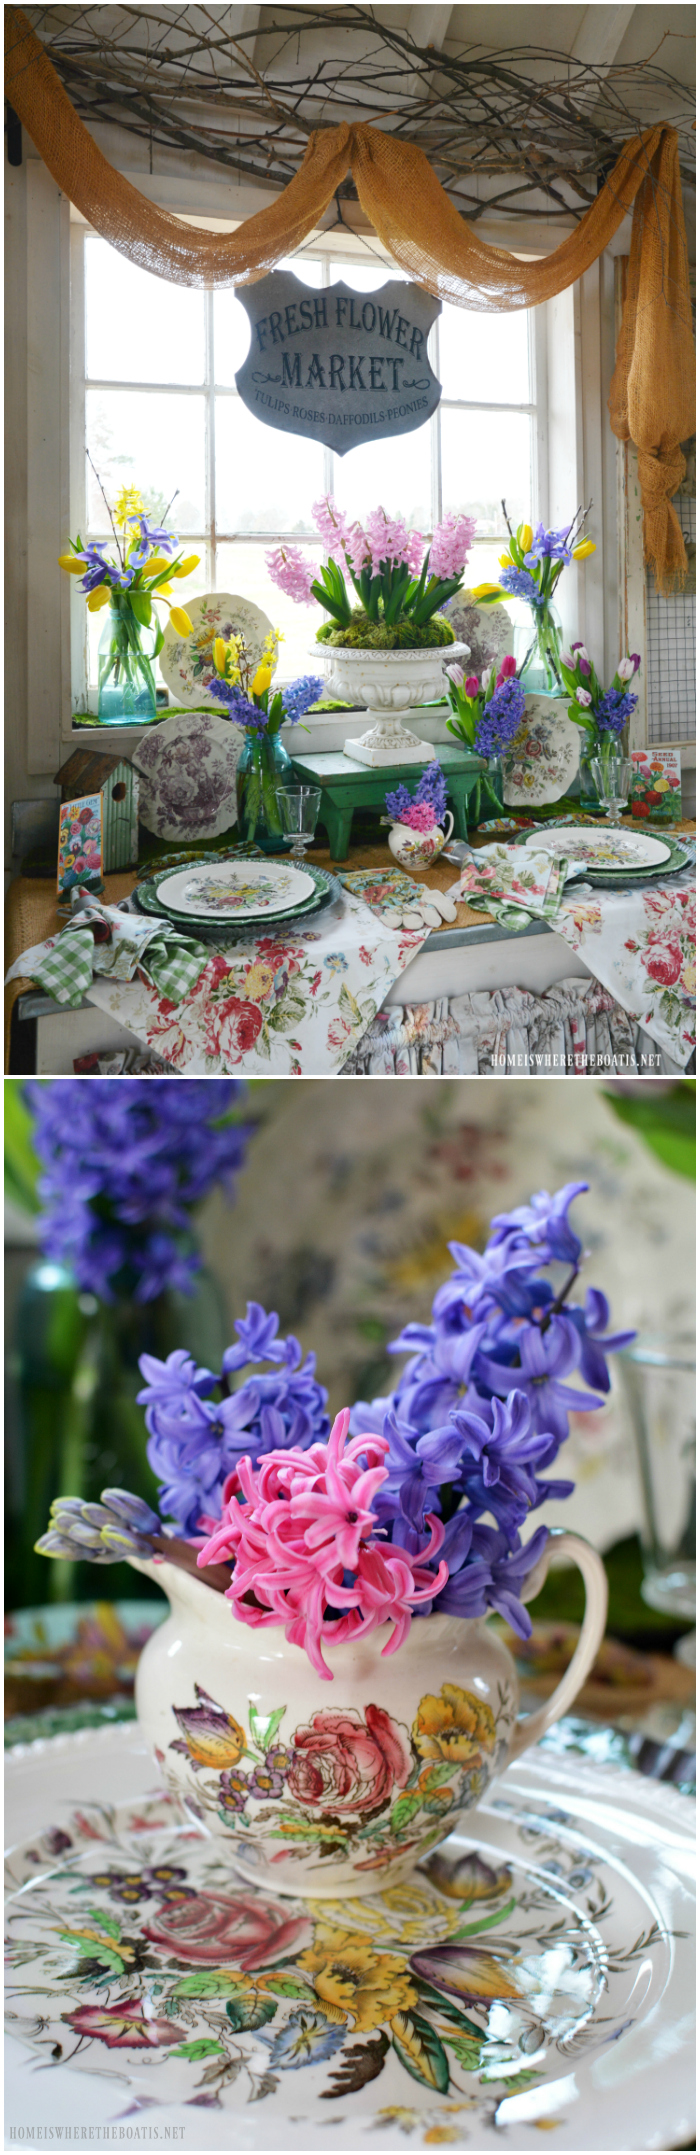 Fresh Flower Market: Spring Blooms in the Potting Shed | ©homeiswheretheboatis.net #garden #flowers #spring #tablescapes